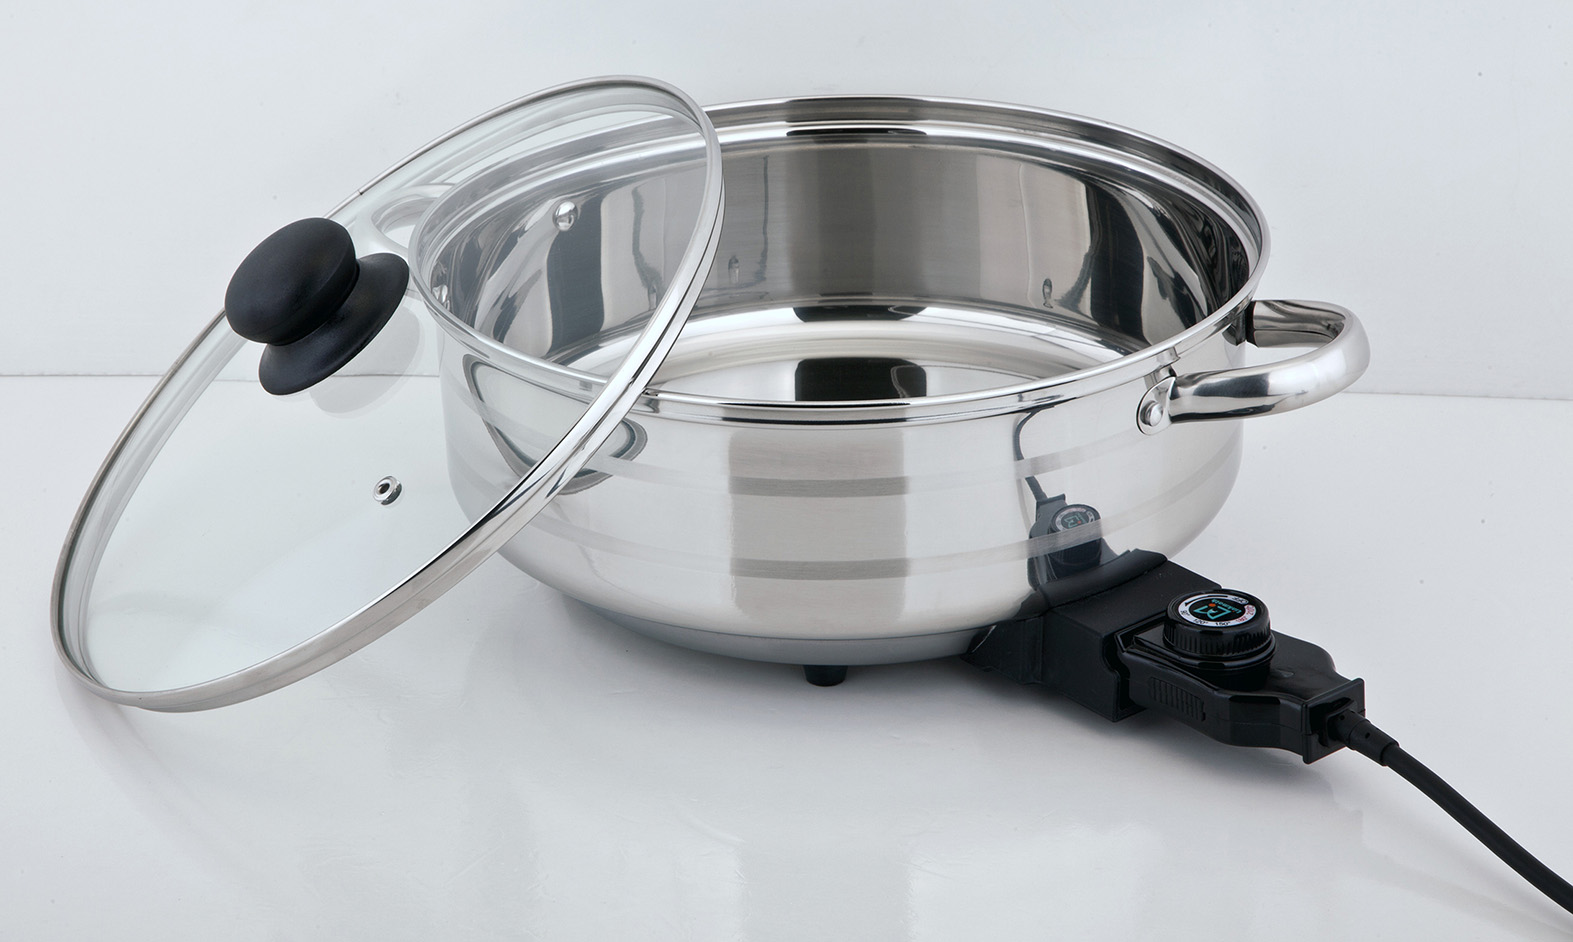 multifunction Non-Stick Coating electric skillet frying pan with glass lid